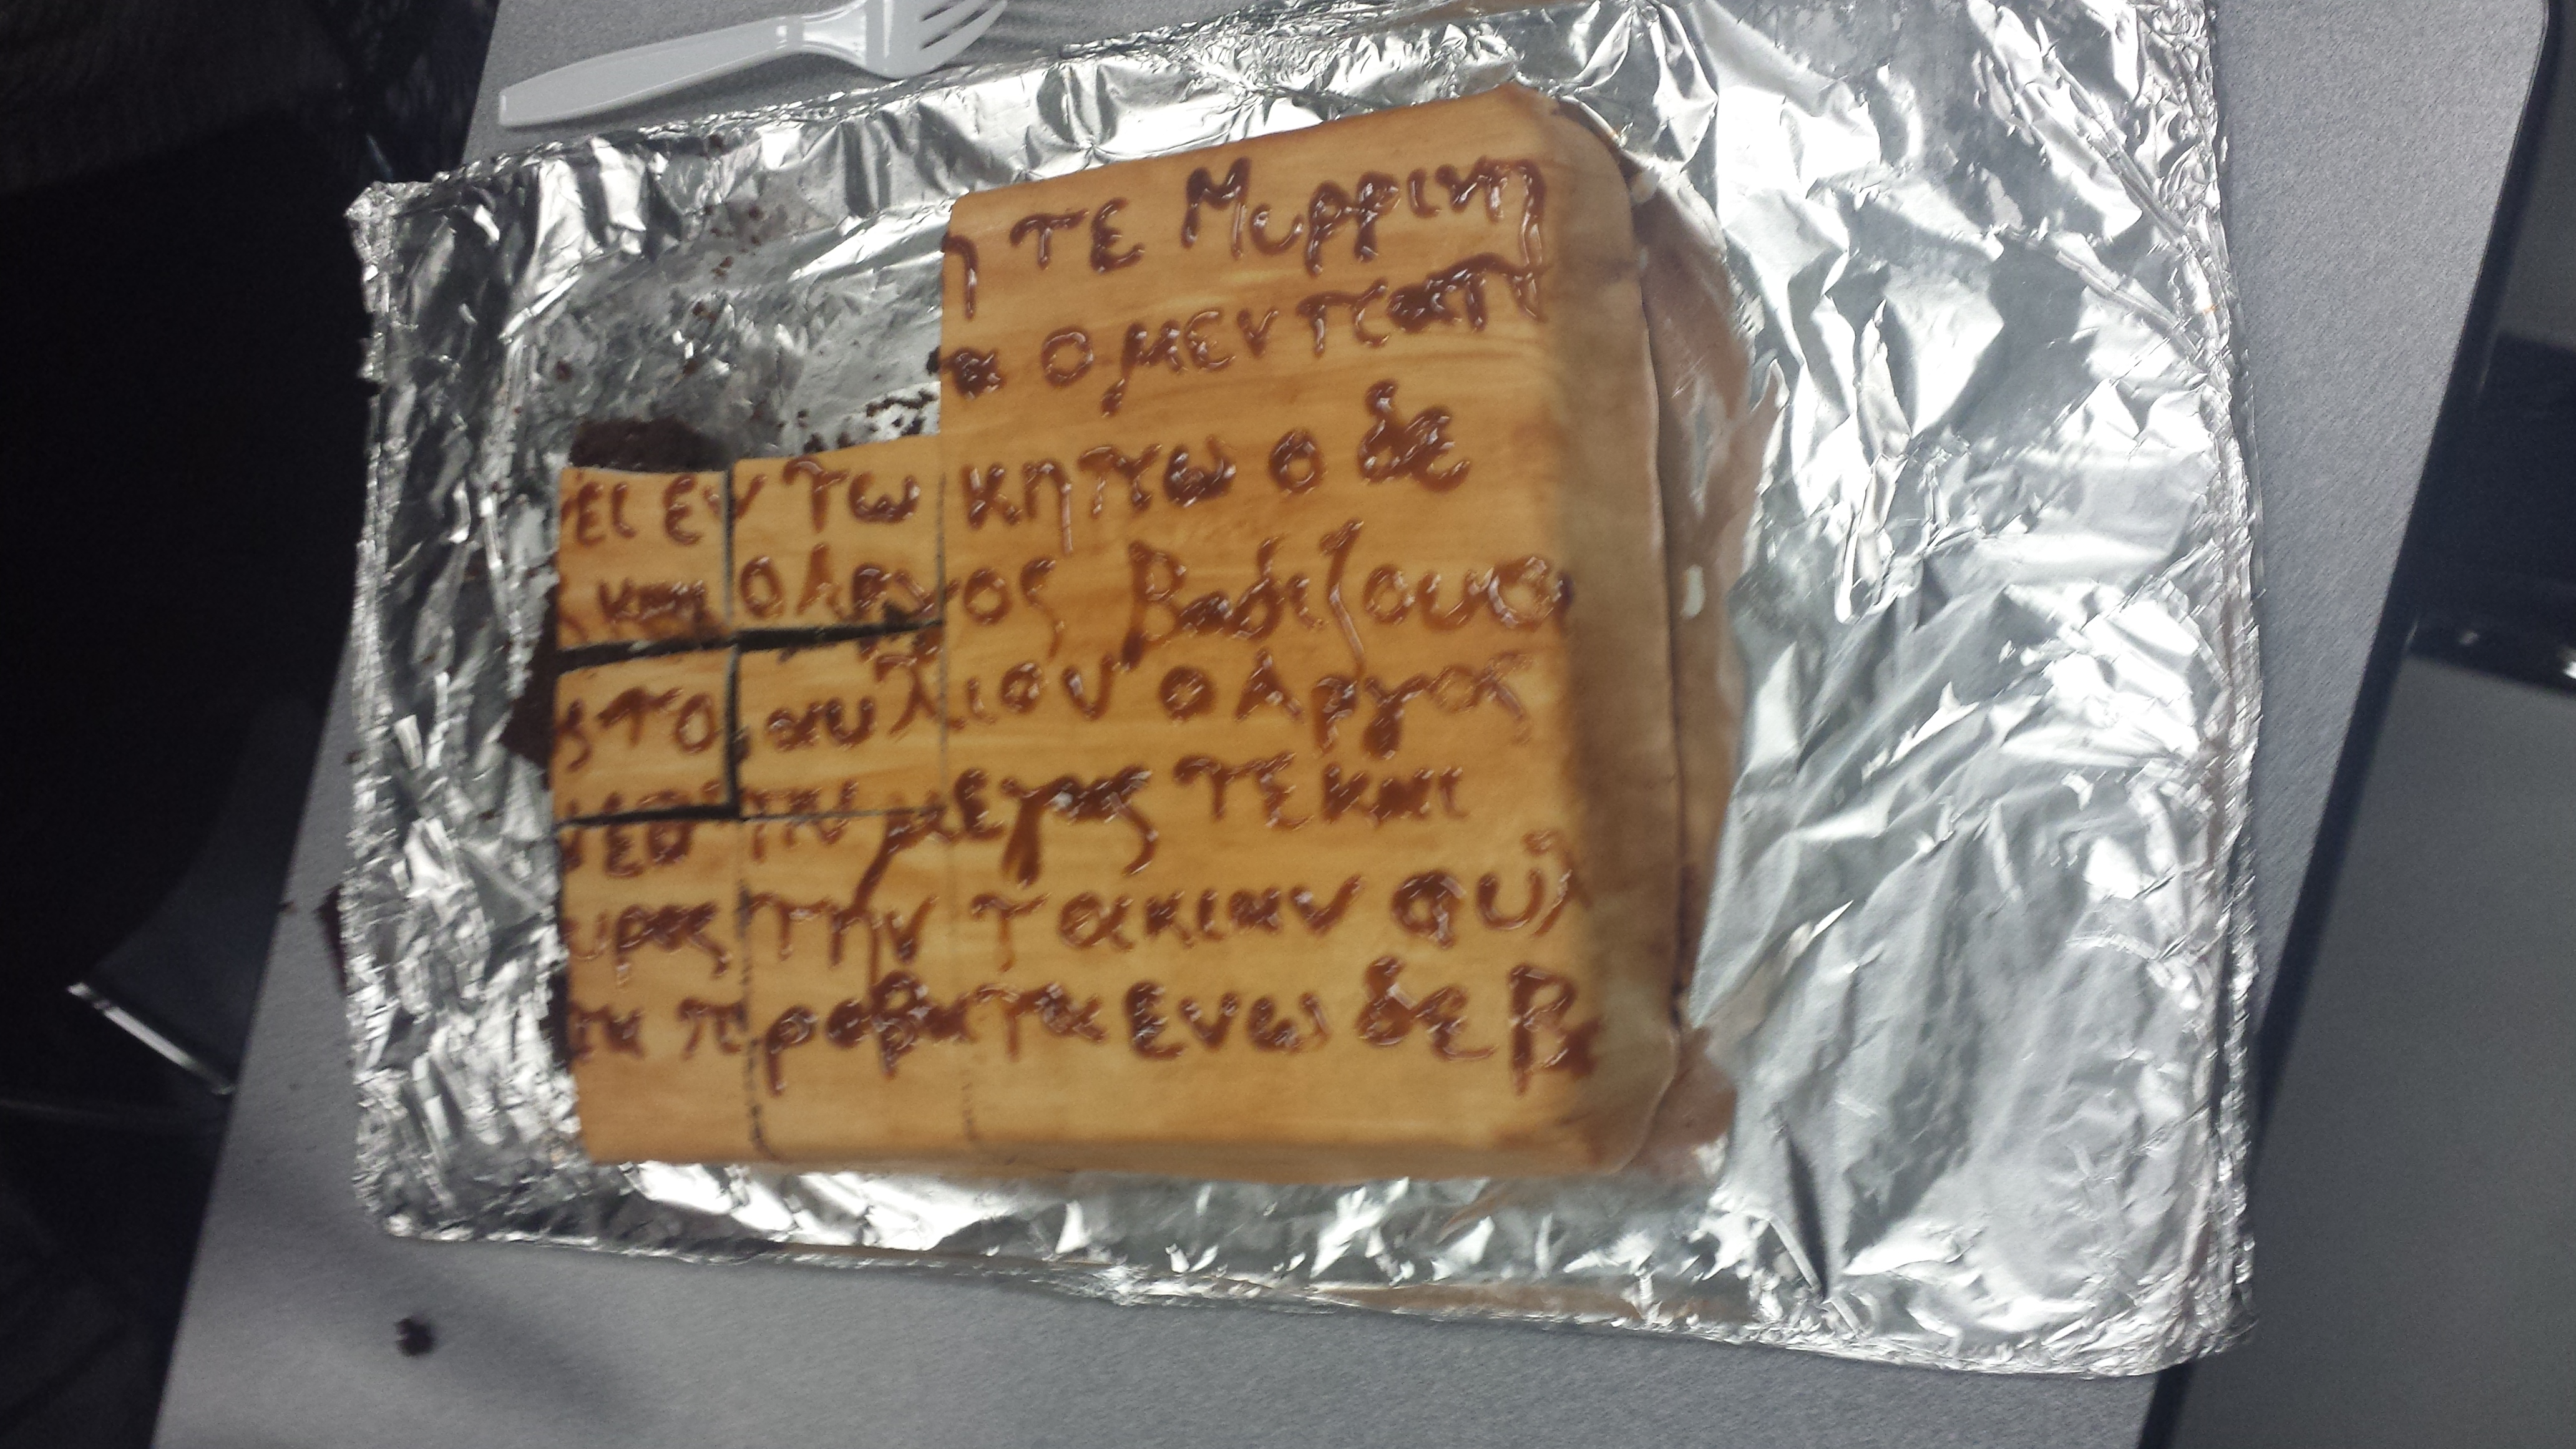 While this cake looks delicious, RBSC patrons are discouraged from eating actual papyri.